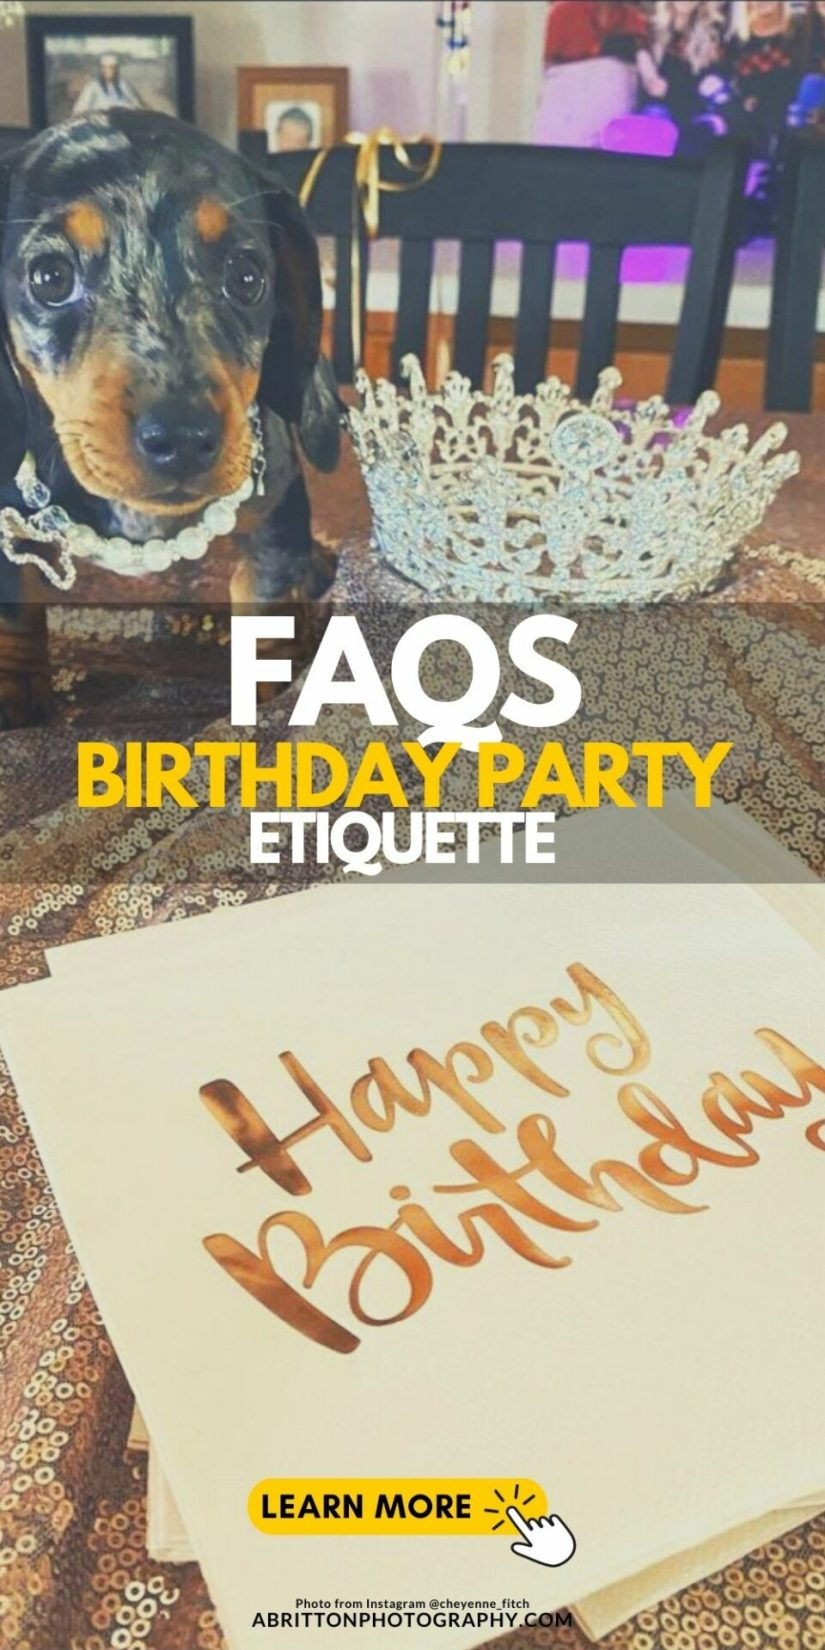 How to Plan a Birthday Party Picture Ideas and Props